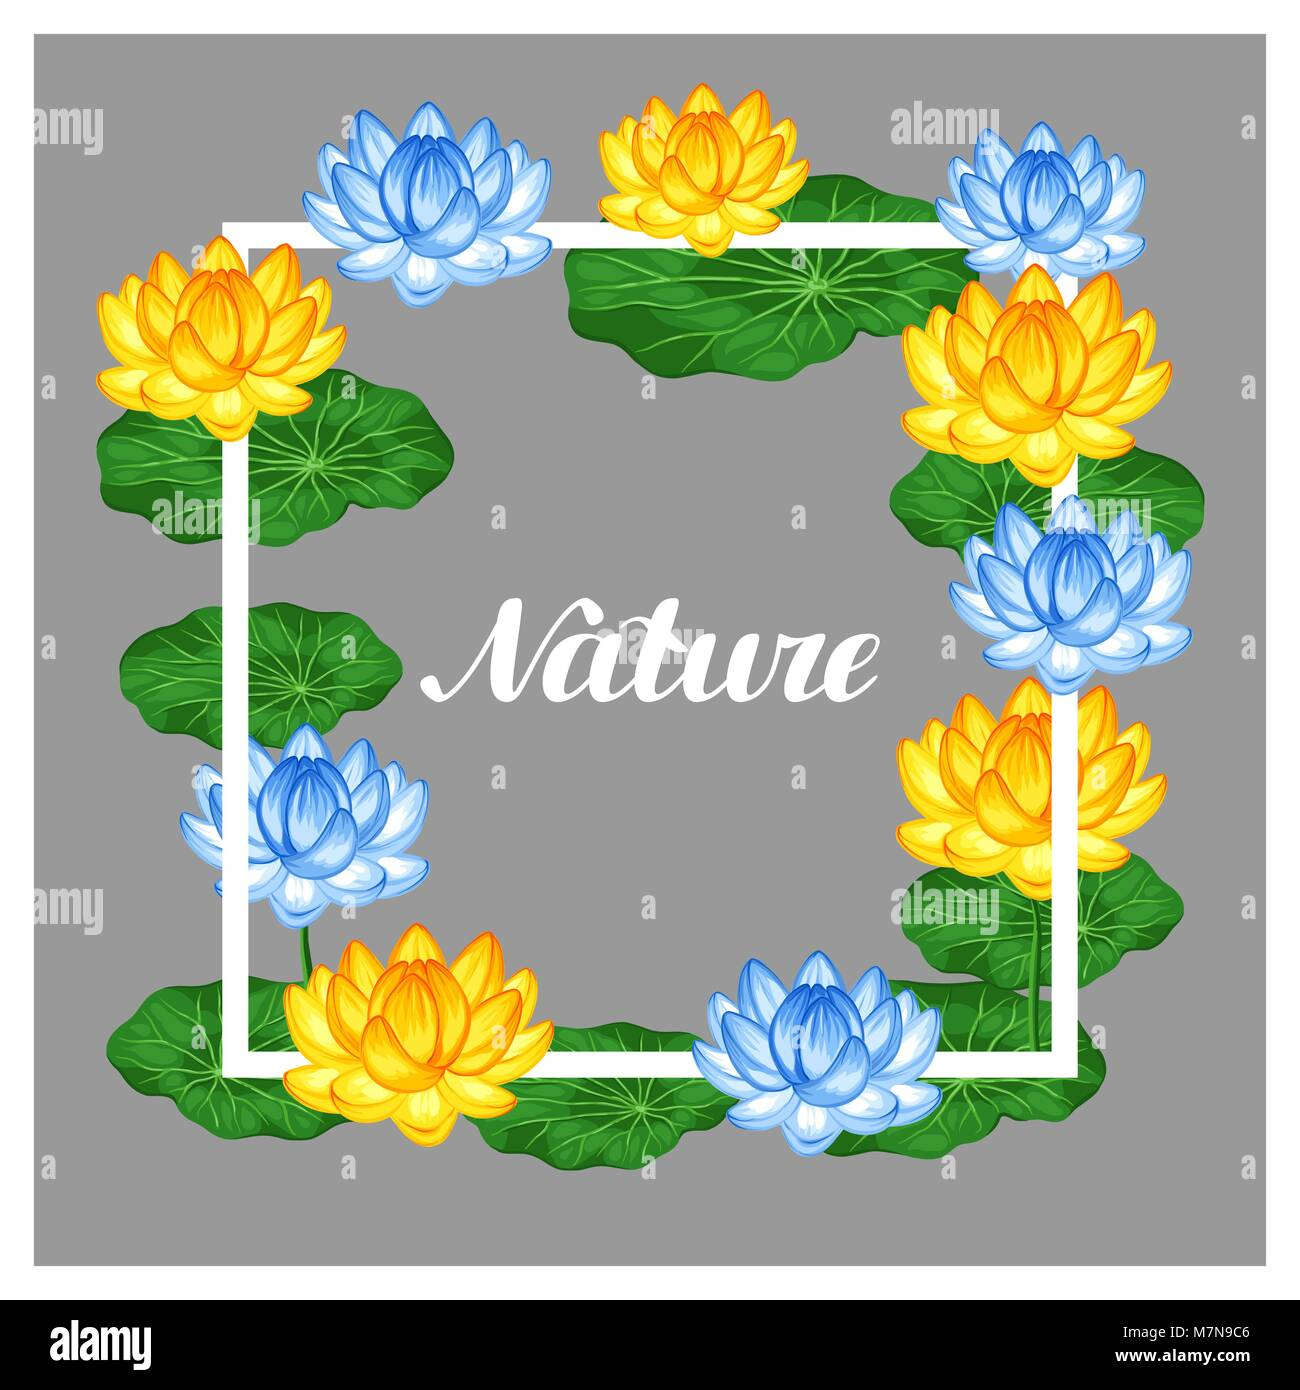 Natural frame with lotus flowers and leaves image for invitations natural frame with lotus flowers and leaves image for invitations greeting cards posters flayers mightylinksfo